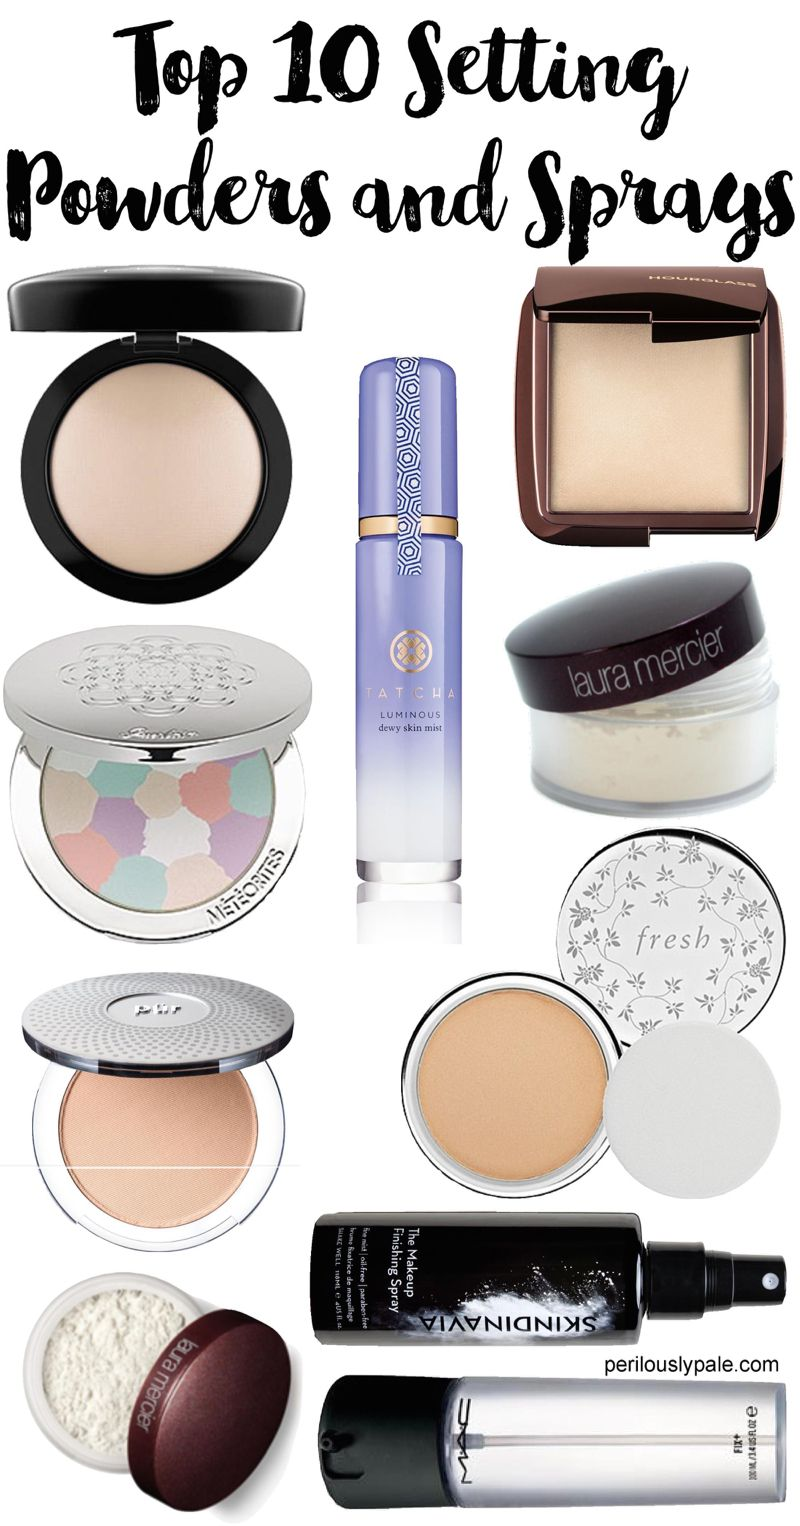 Top 10 Setting Powders and Sprays for Dry Skin